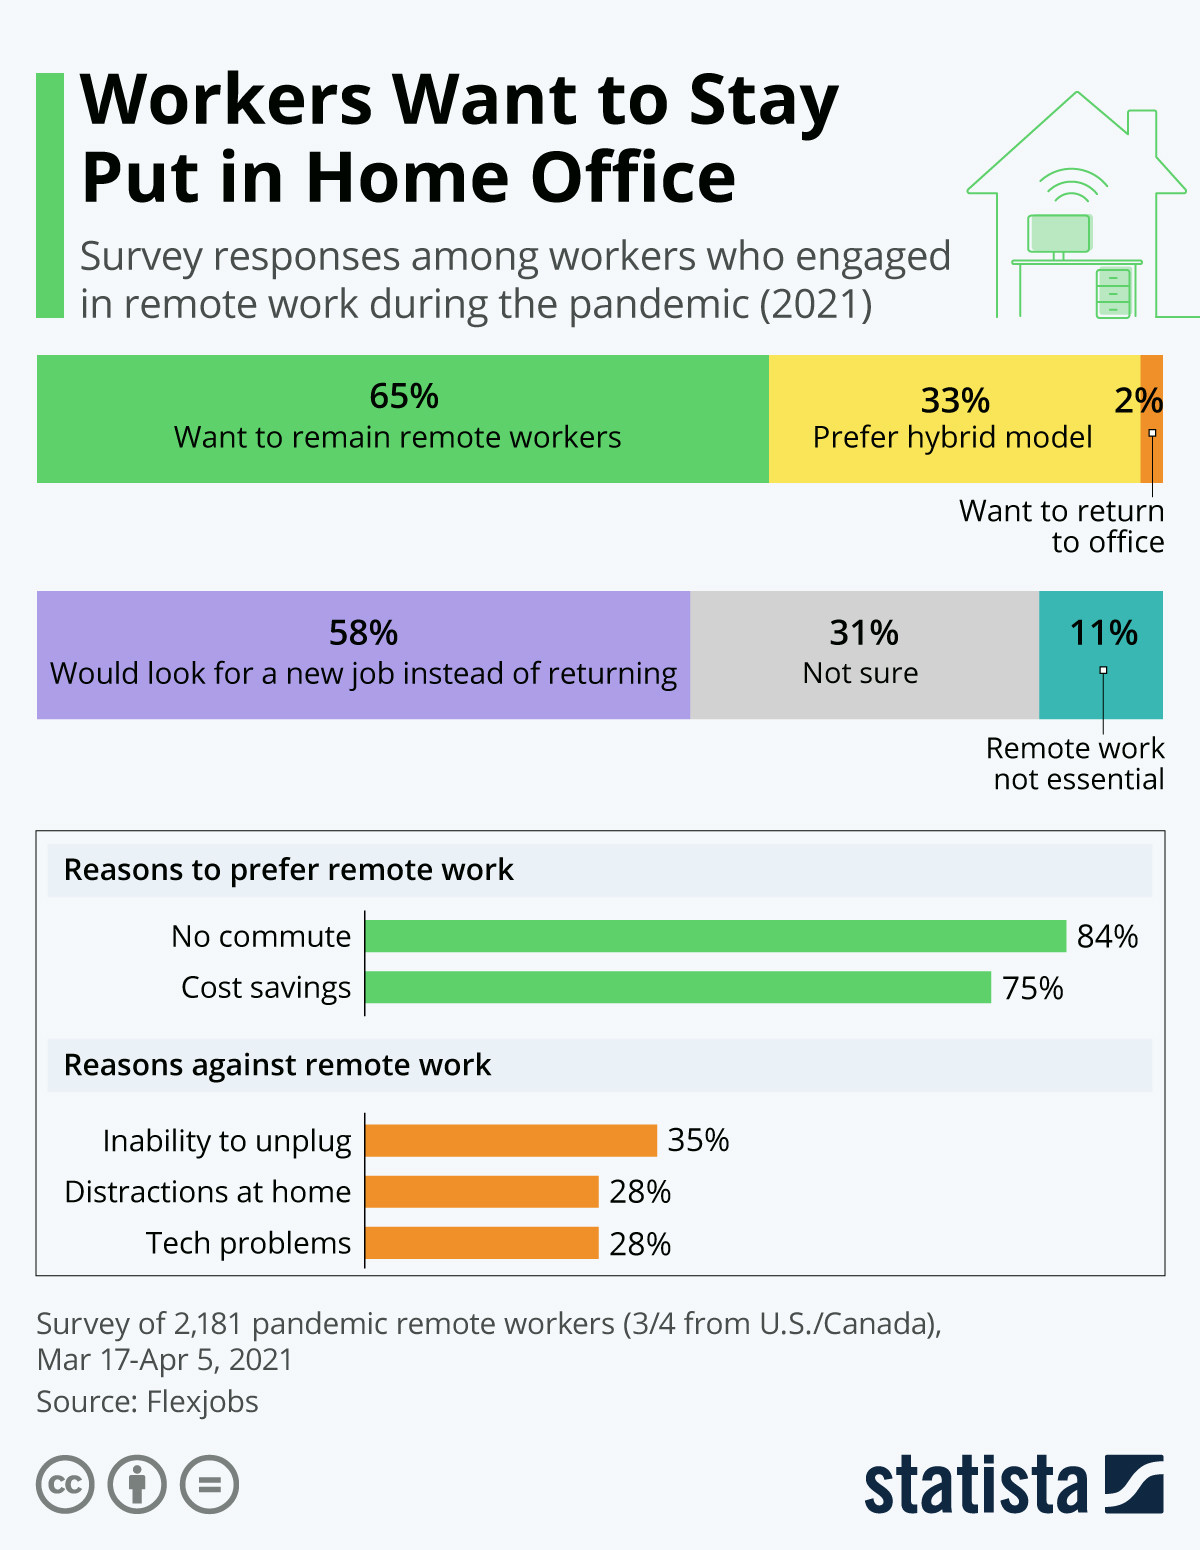 Workers want to stay put in home office